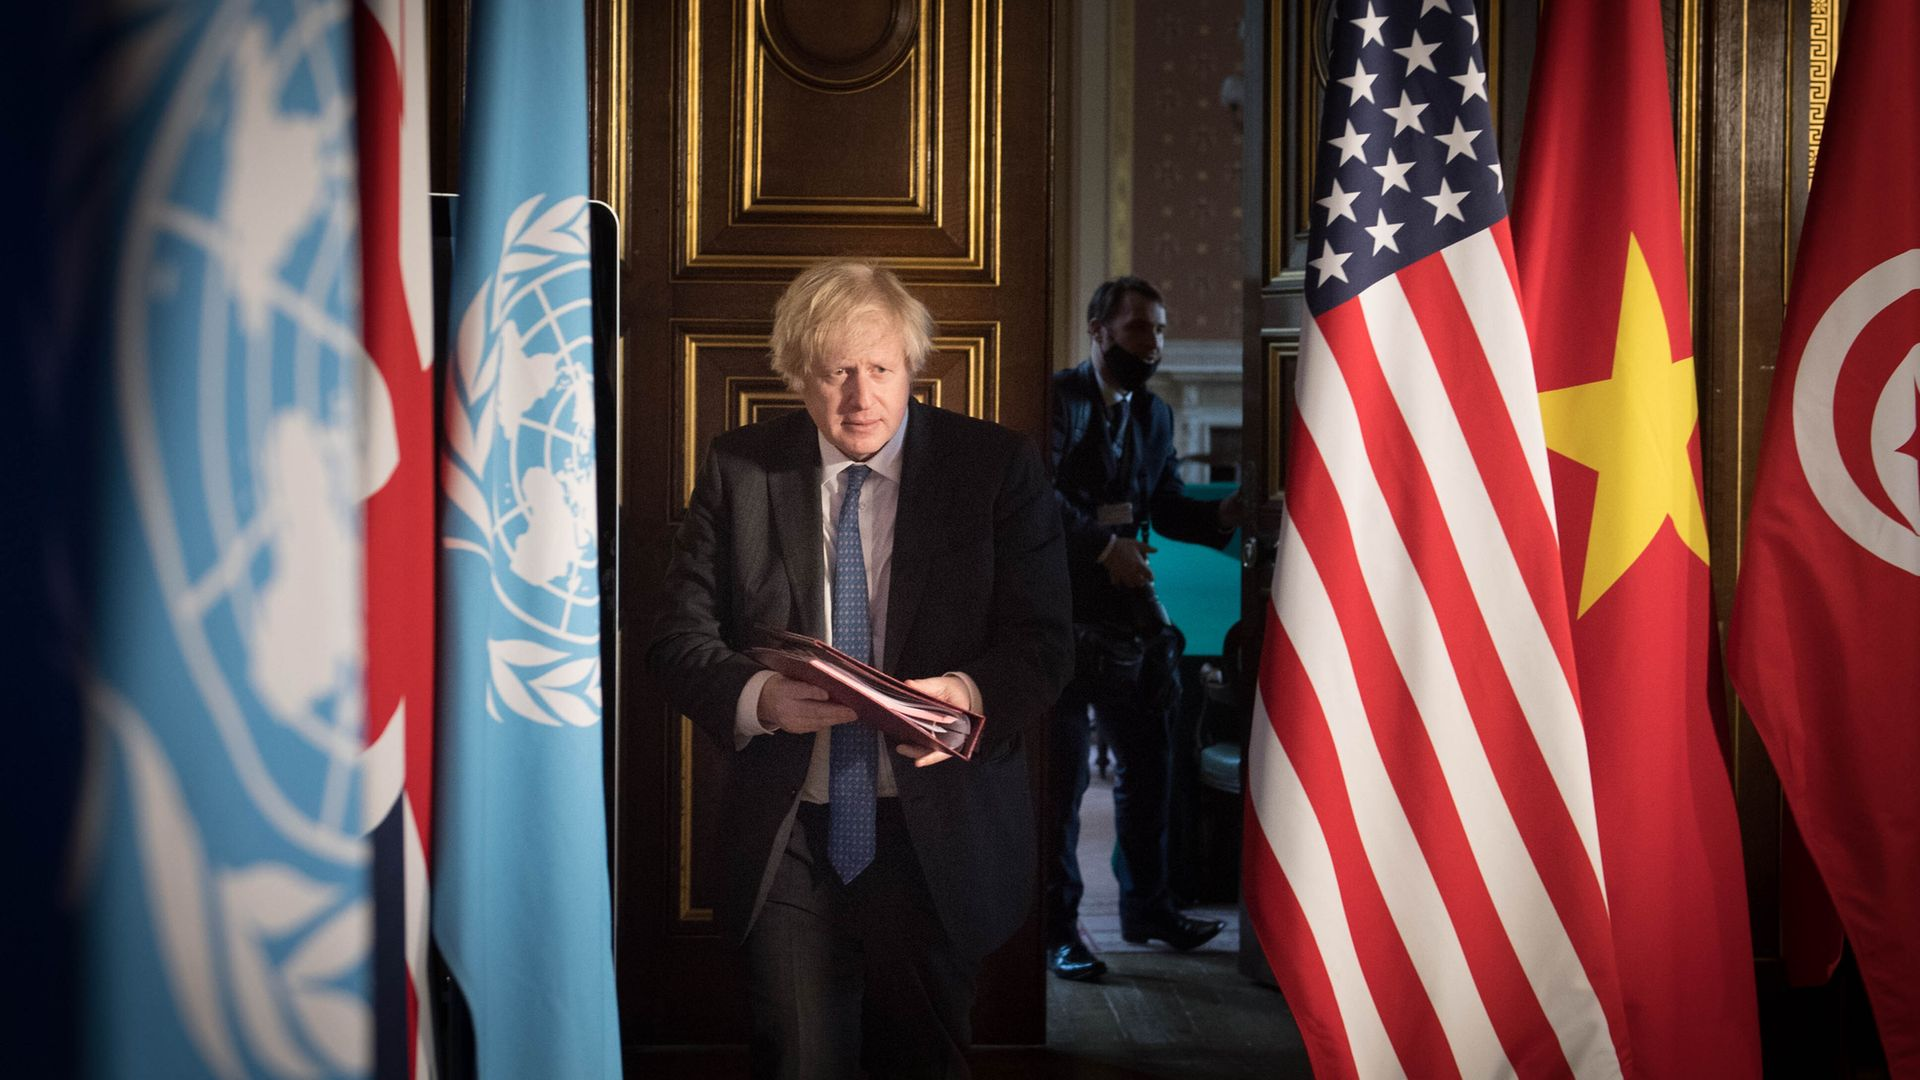 Prime minister Boris Johnson chairs a session of the UN Security Council on climate and security at the Foreign, Commonwealth and Development Office in London - Credit: PA